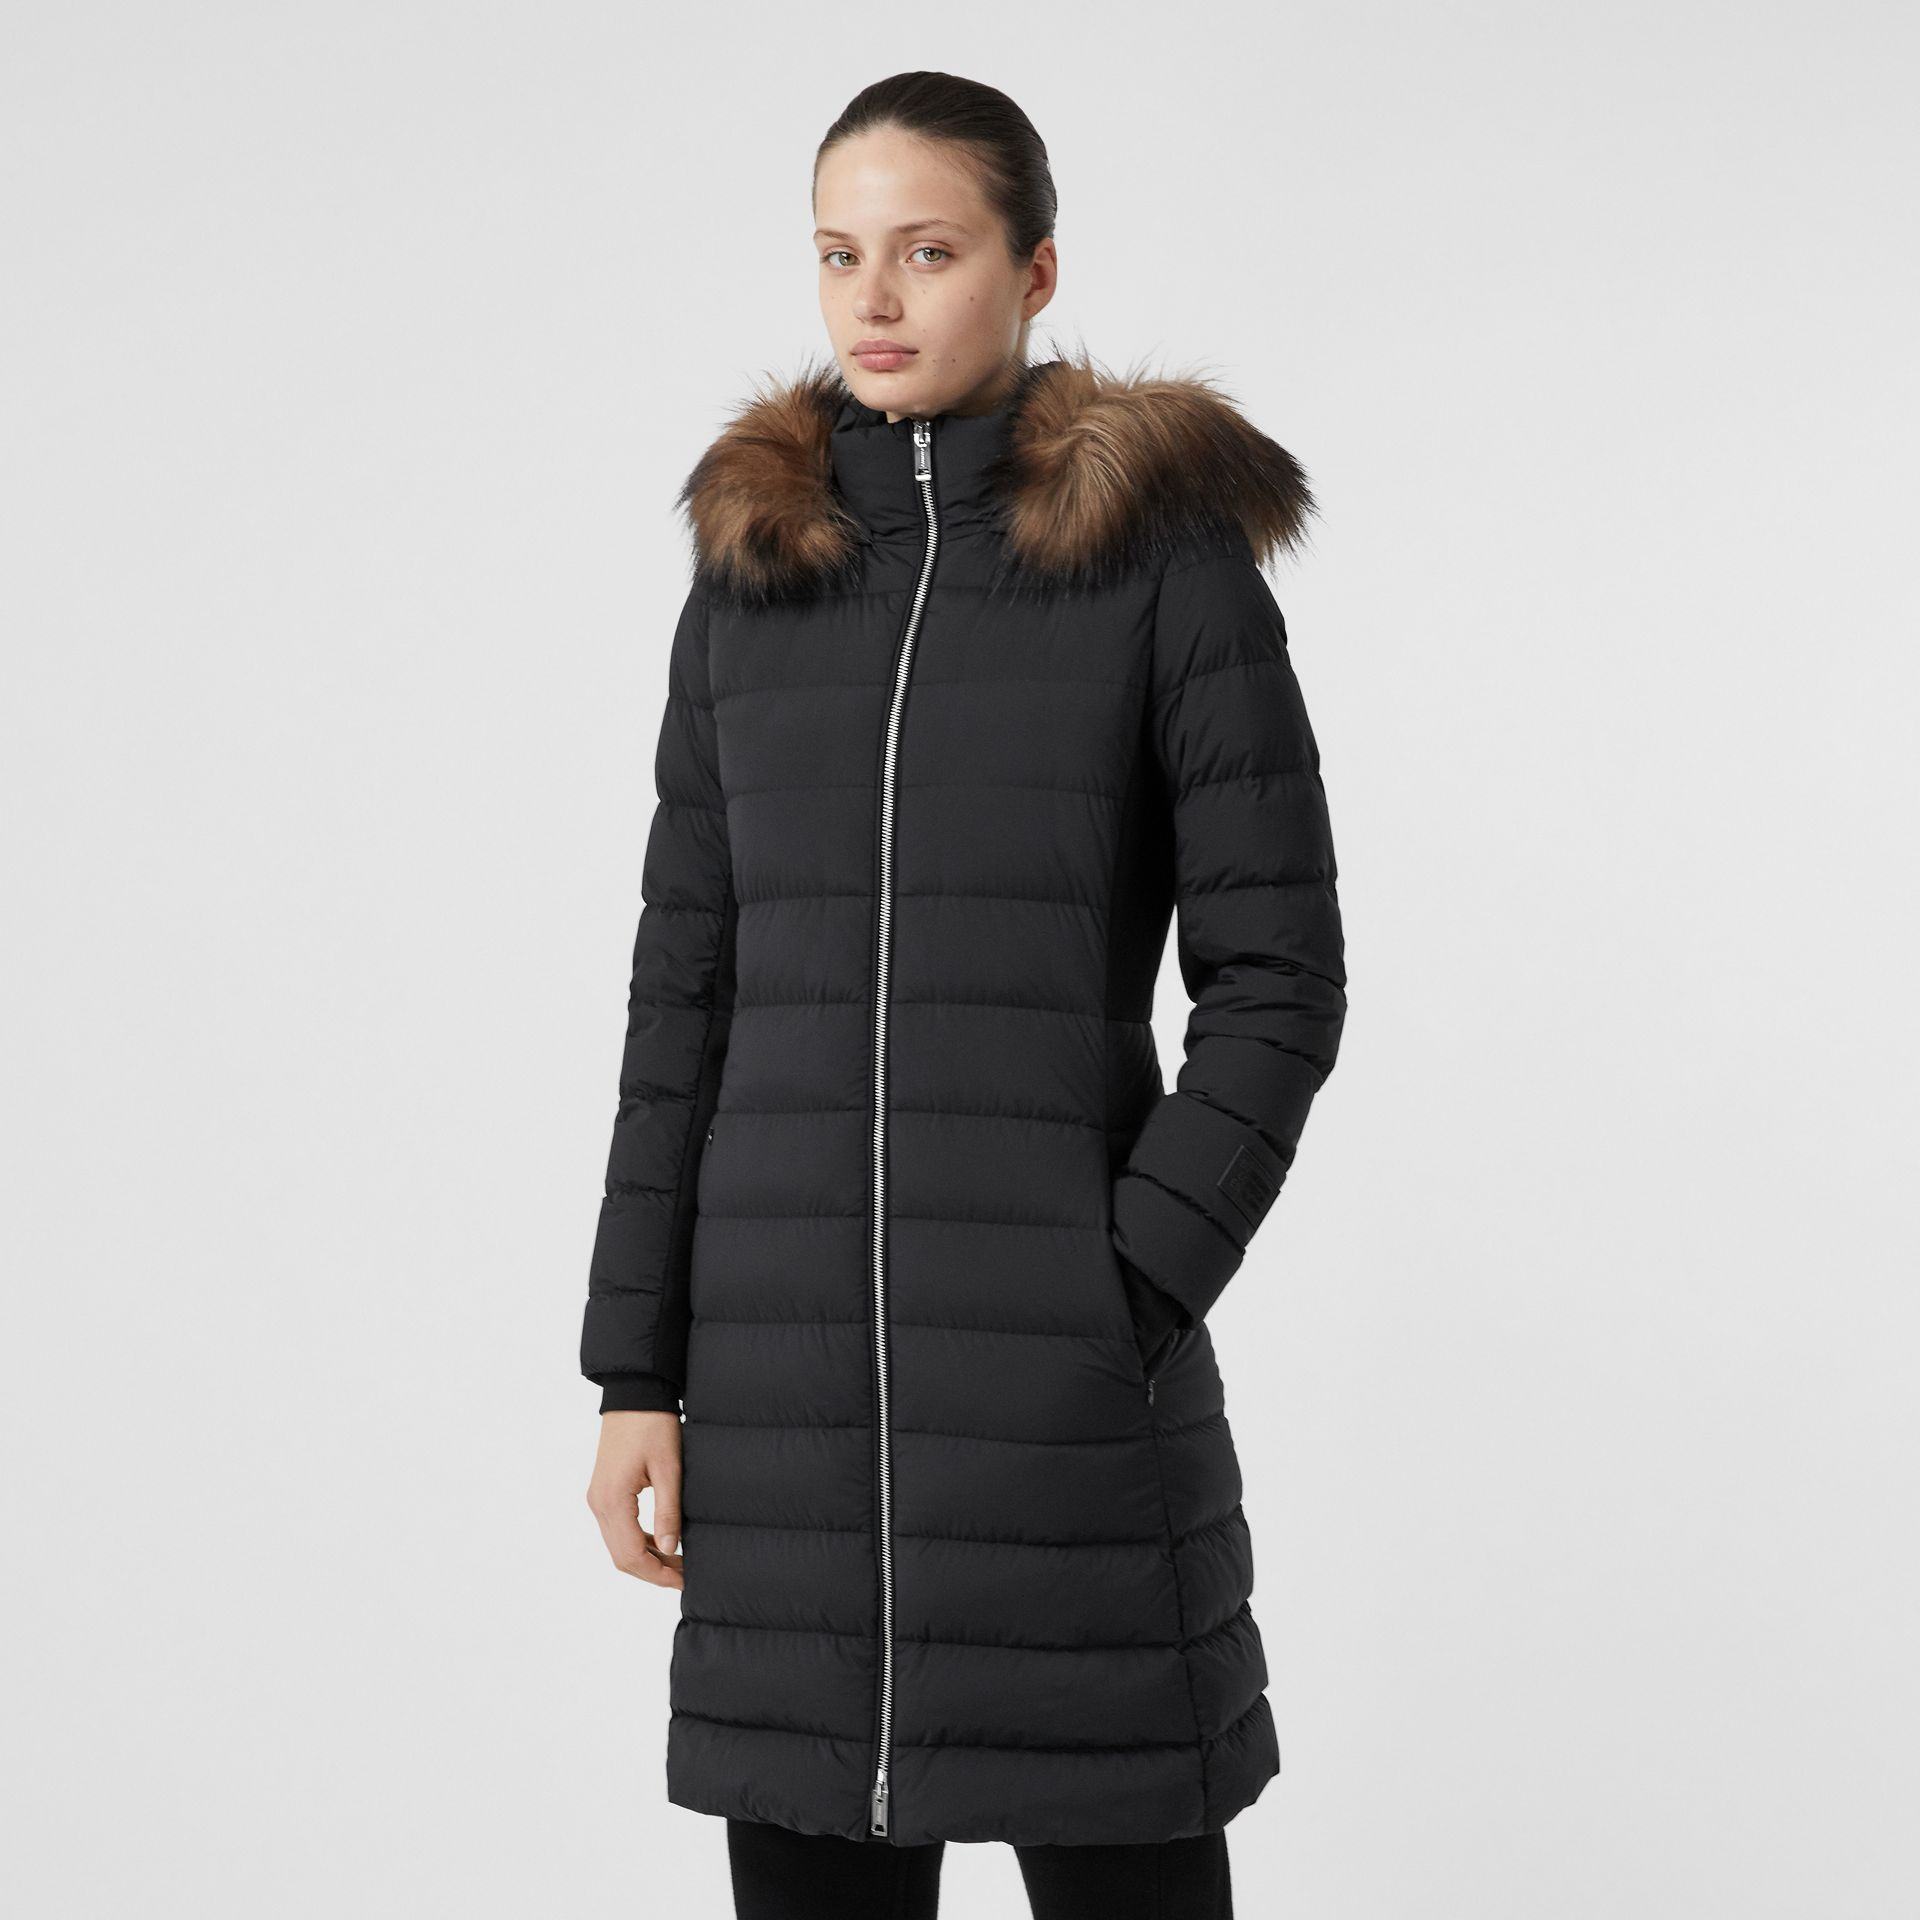 Detachable Faux Fur Trim Hooded Puffer Coat in Black - Women | Burberry - gallery image 4